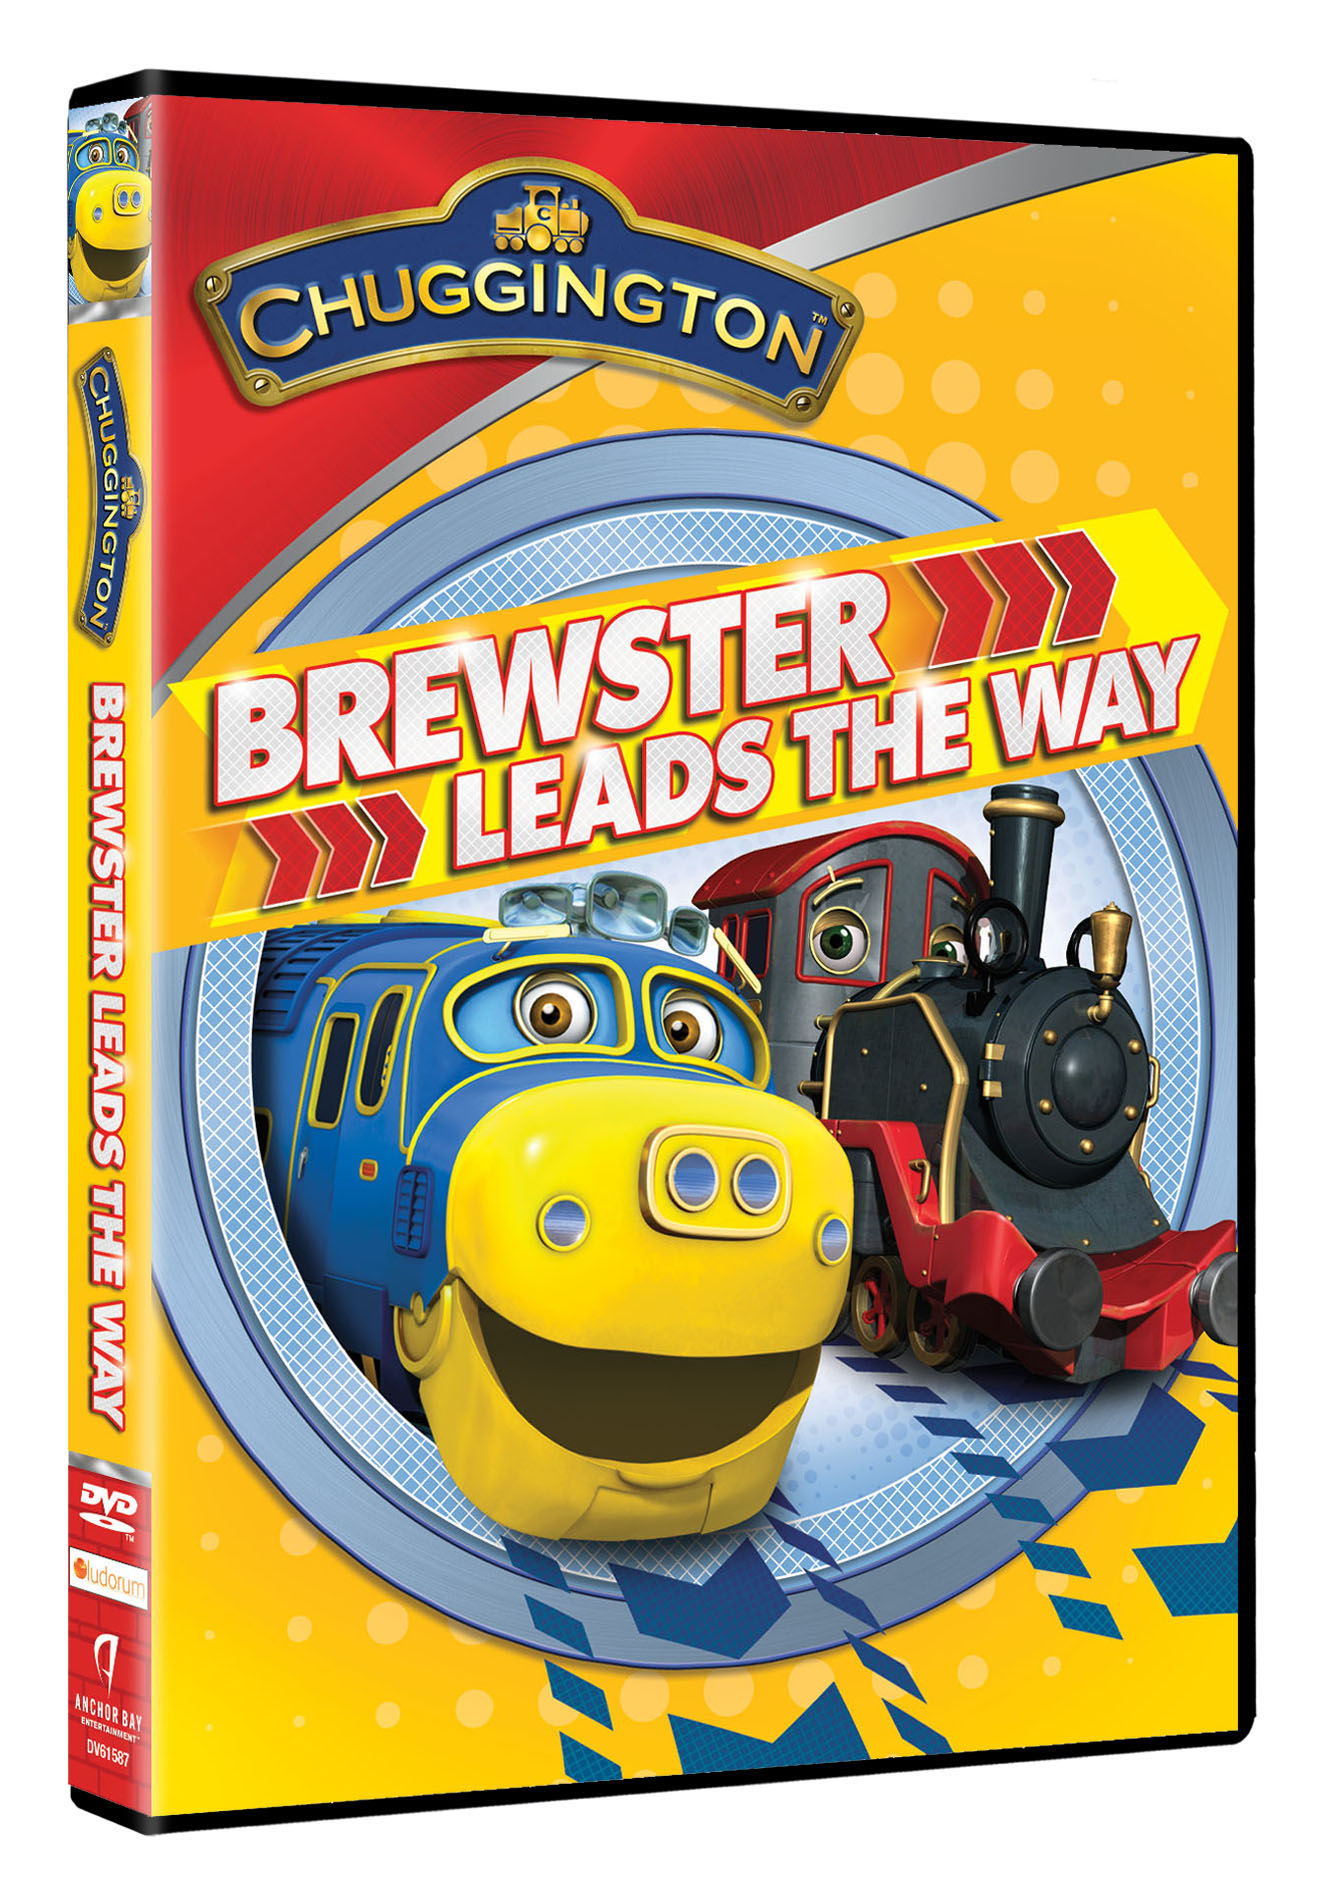 Giveaway: New Chuggington DVD - Brewster Leads The Way! (US, Ends 2 ...